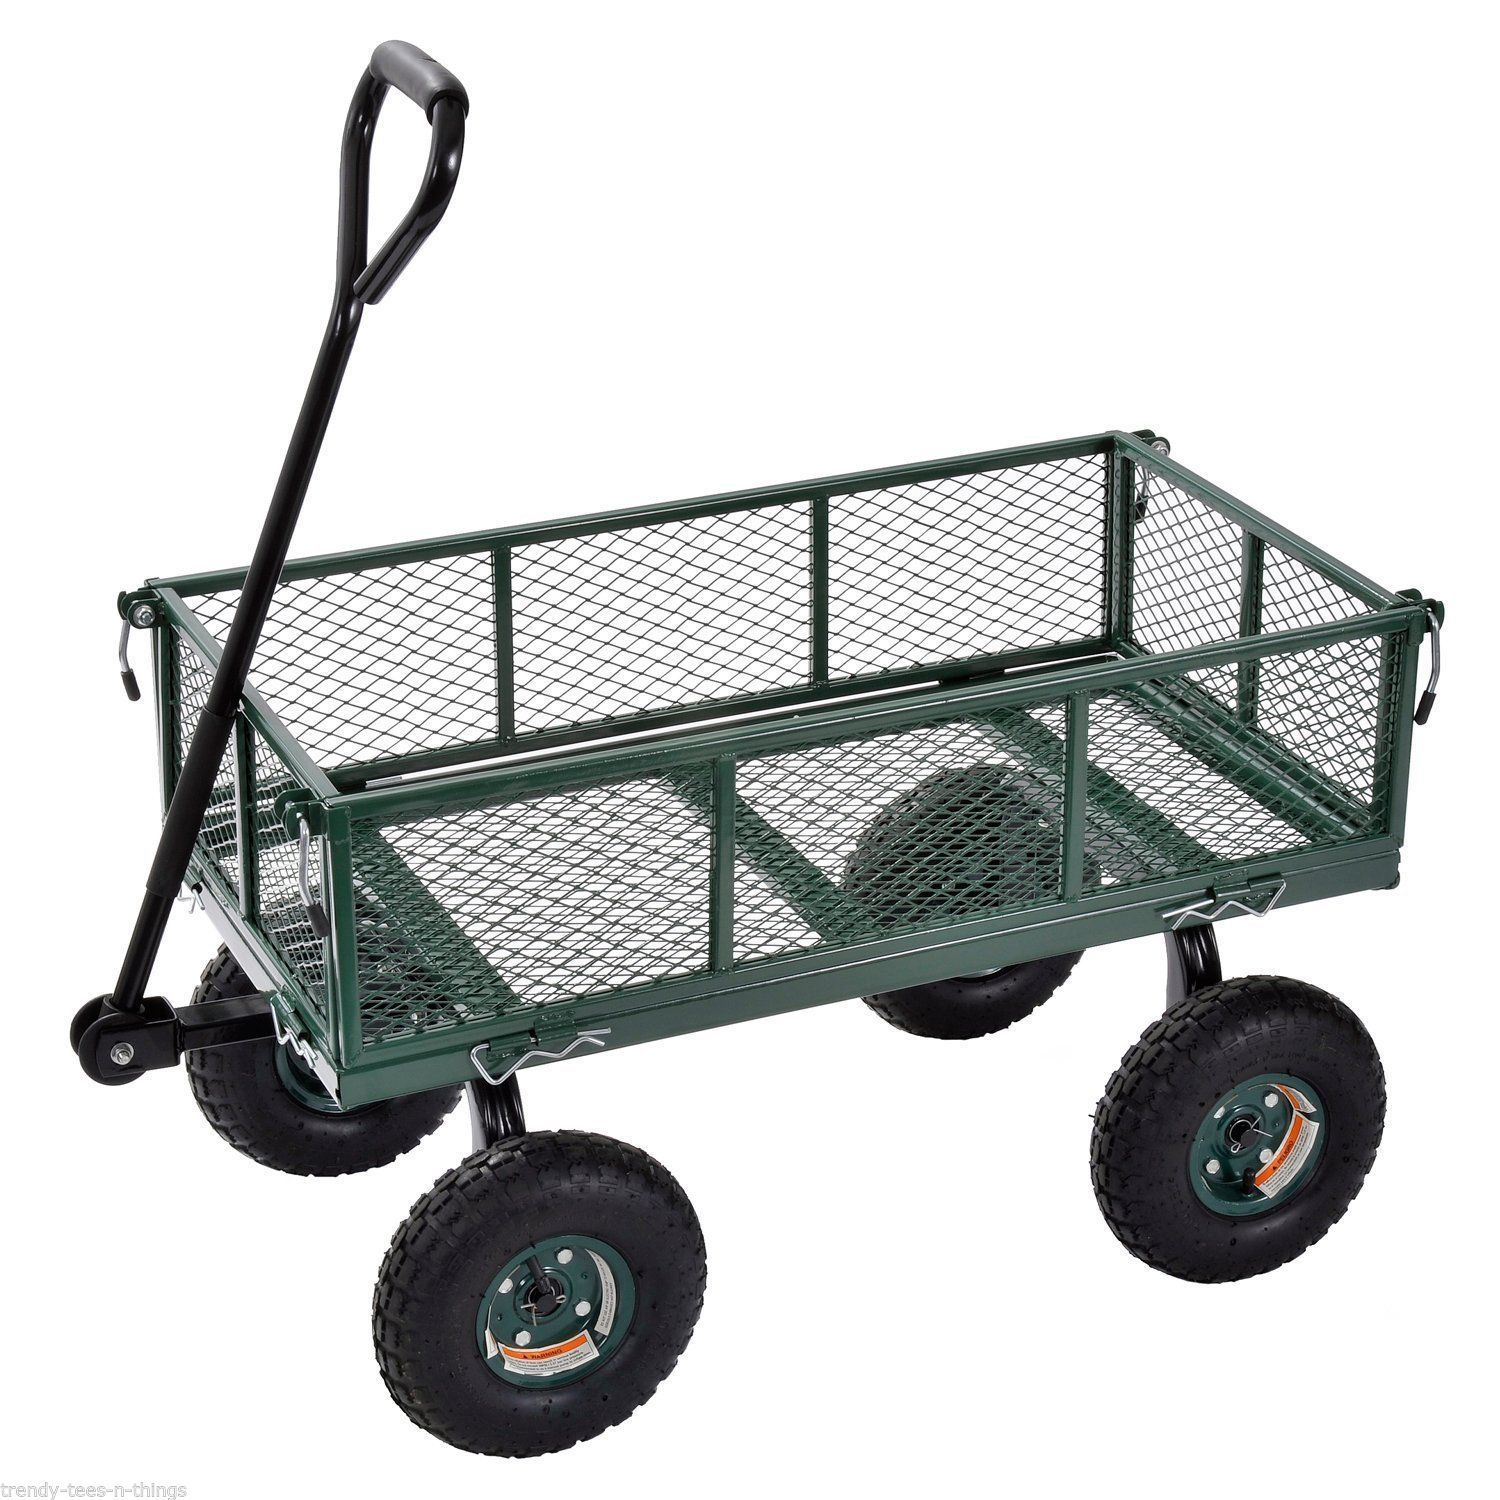 35 together with 32 Gallon Trash Can With Wheels likewise Makita High Performance Two Stroke Engine Oil 50 1 as well Flash Furniture Recliner And Ottoman BT 7818 VIN GG FFC4083 furthermore Radio Flyer Big Red Wagon. on outdoor trash carts